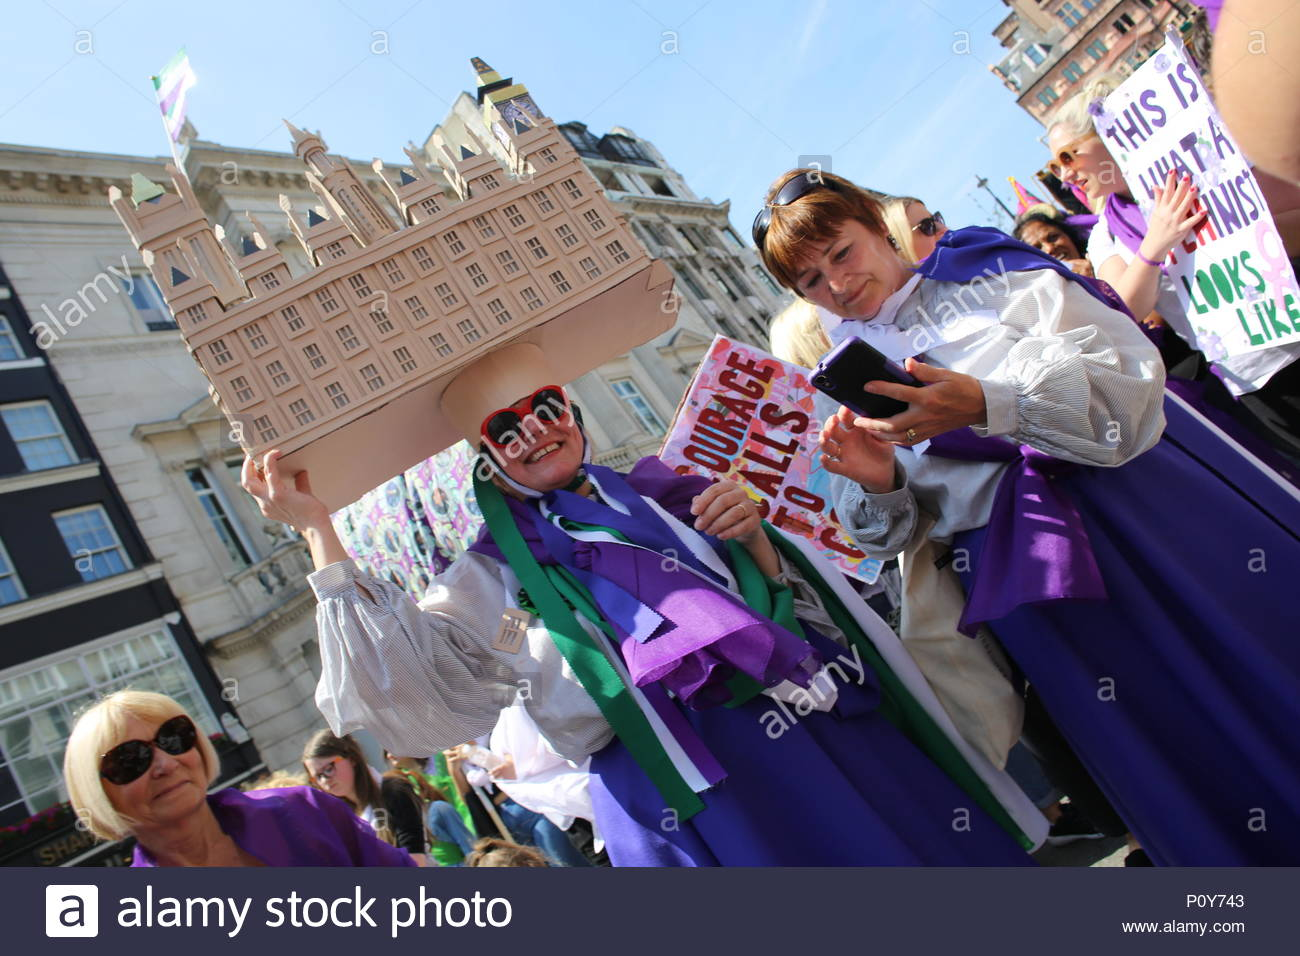 London, UK. 10th June 2018. Glorious weather in London as a march to Westminster took place in honour of the Suffragette movement. A large march wound its way towards Westminster with thousands of jubilant women celebrating 100 years of votes for women. - Stock Image